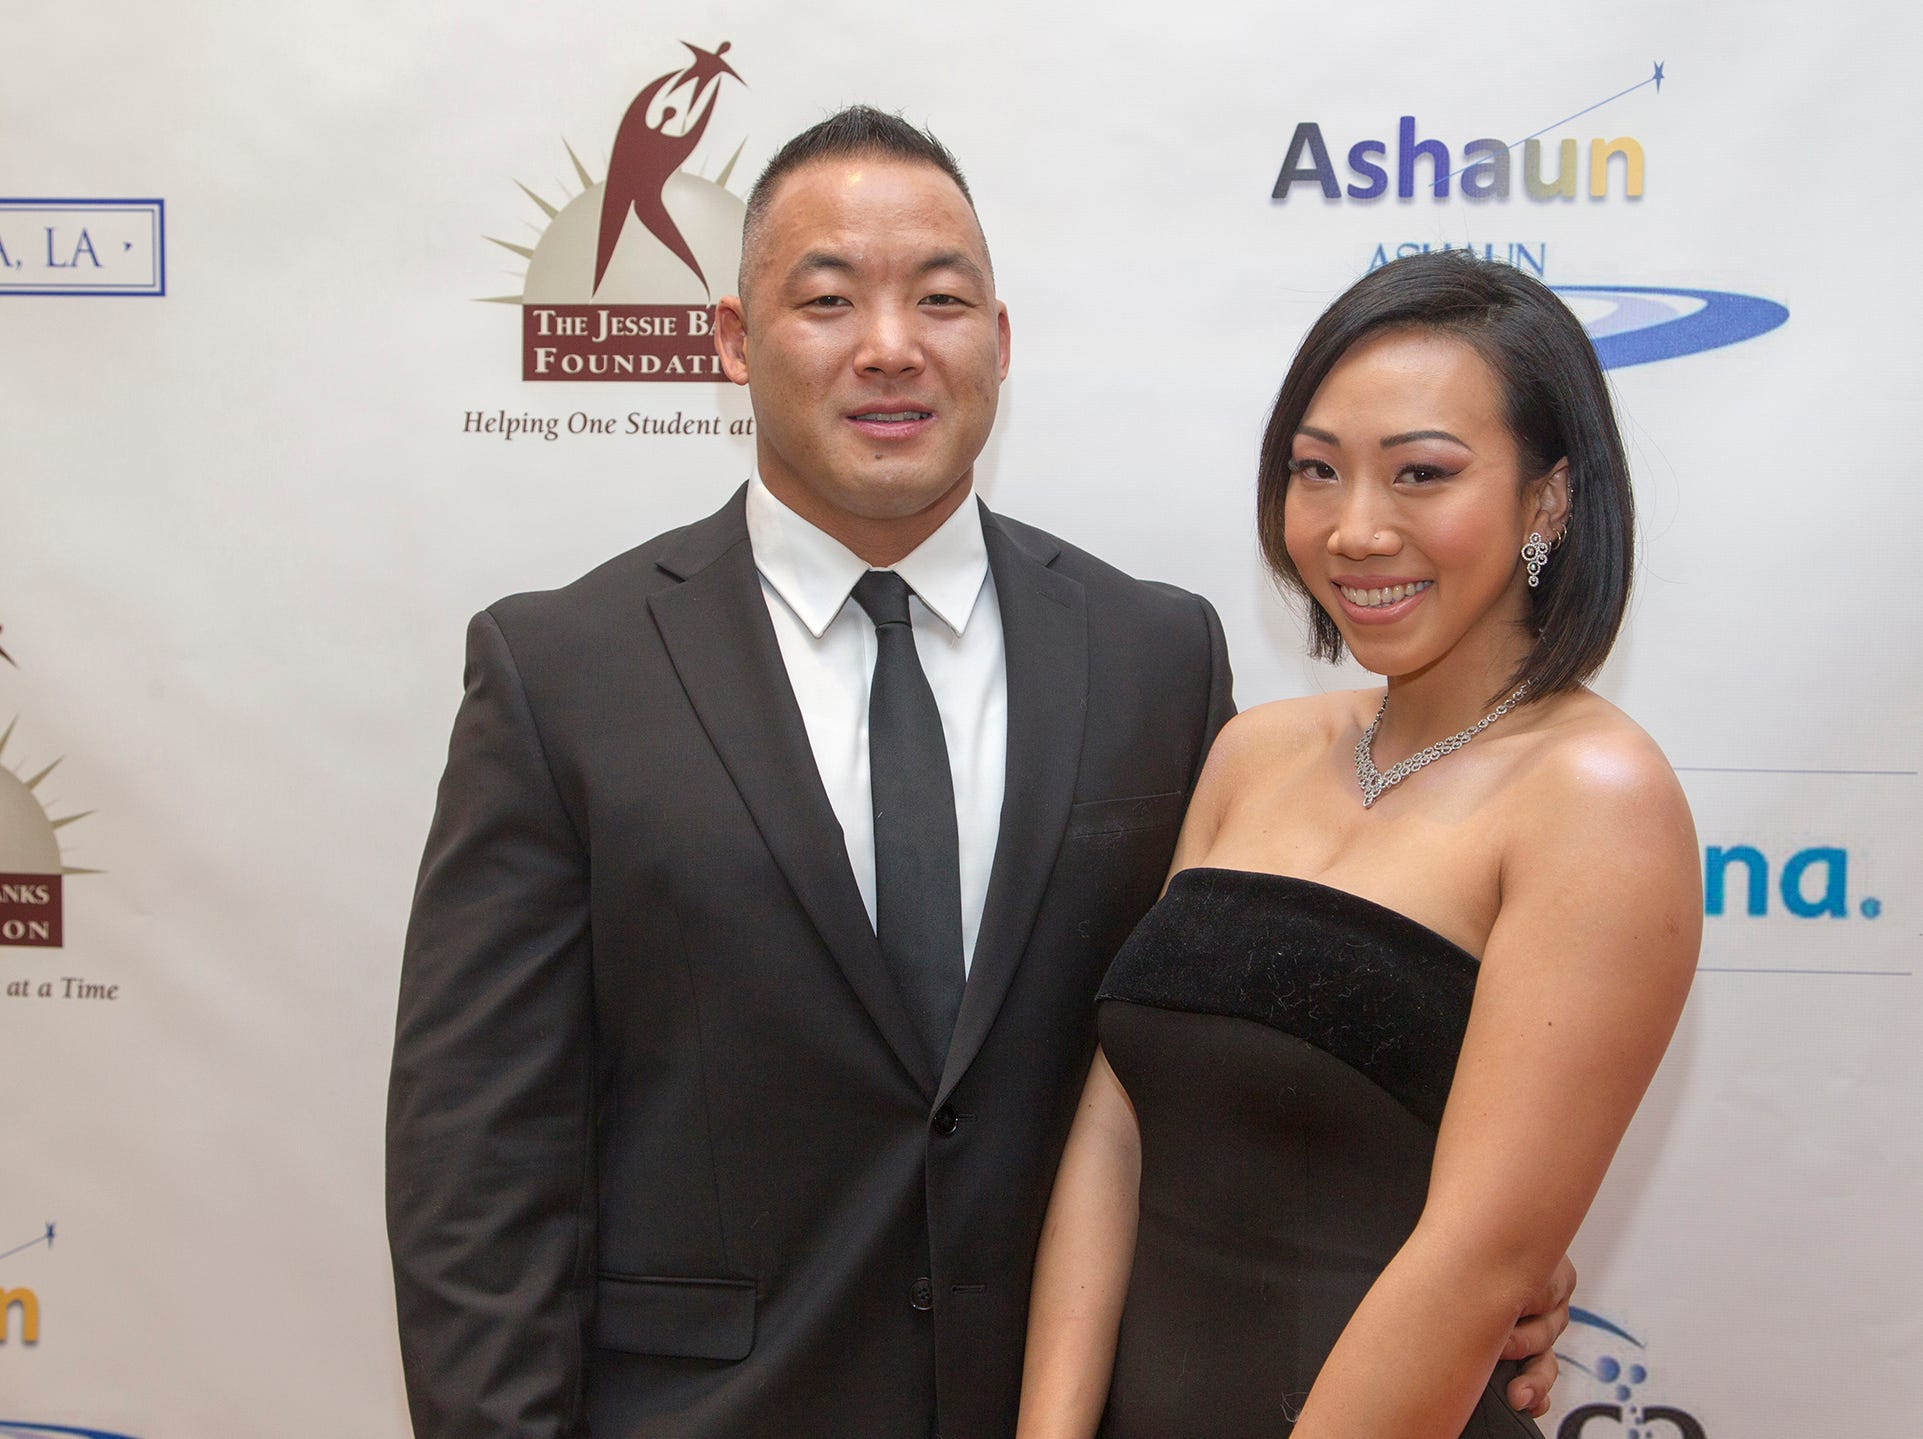 Gilbert Hwang, Trinnie Dang. Jessie Banks Foundation holds 16th annual Scholarship Awards Gala in Teaneck. 11/09/2018